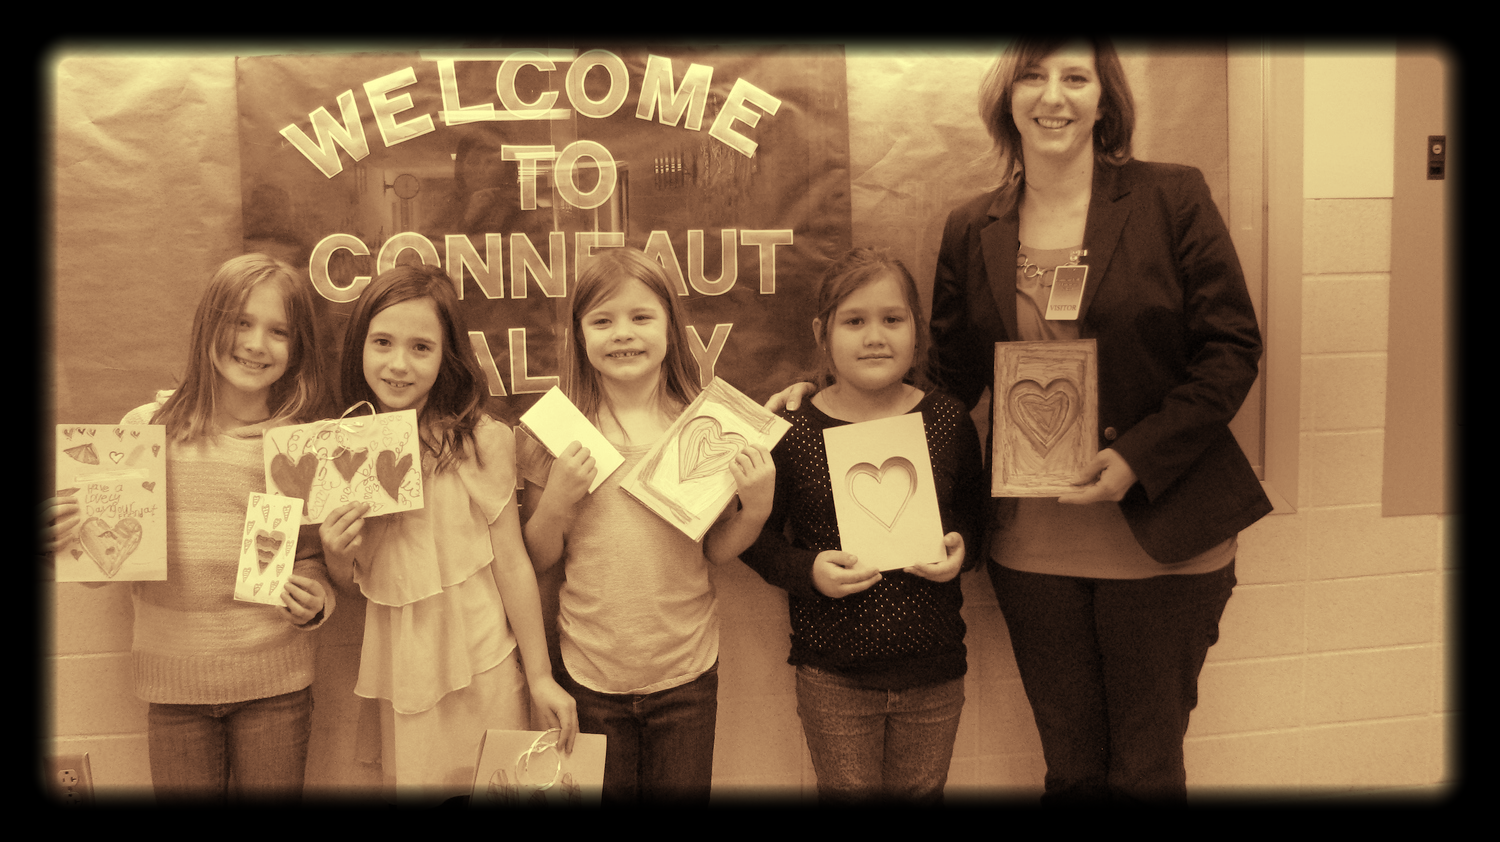 From left to right:  Maria Bonanti, Lexi Potts, Maddie Robertson, Maylie Hart and Cathy Weber.  Missing from the photo:  Kylie Mattera and Olivia Numer